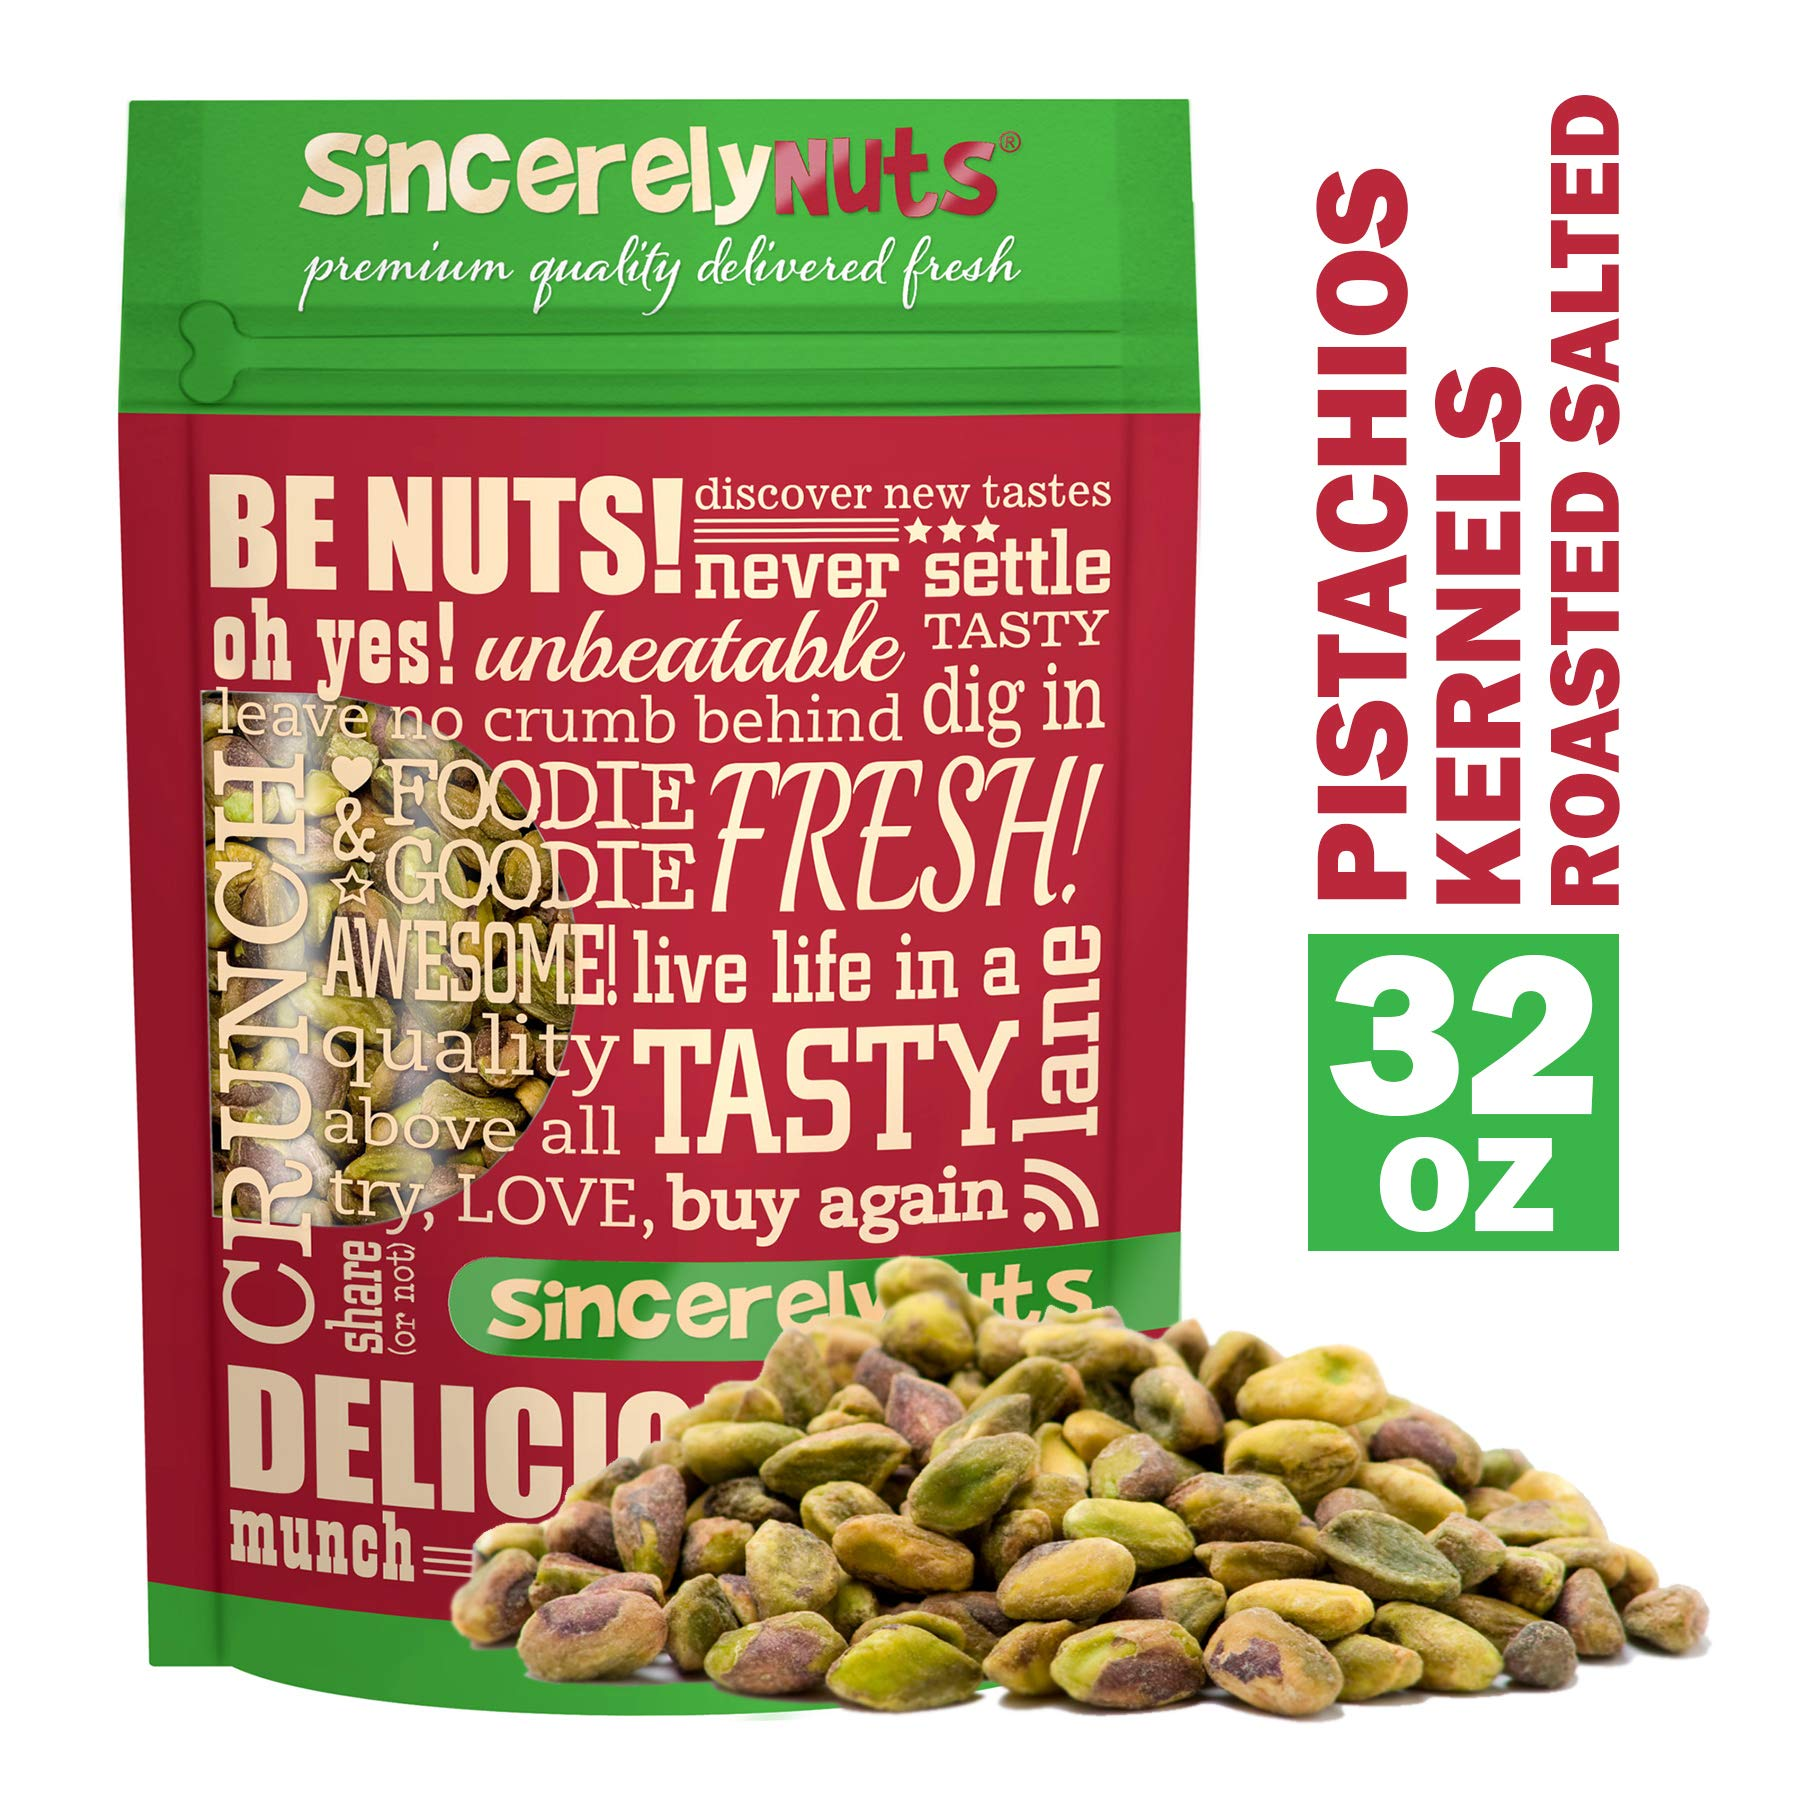 Sincerely Nuts Pistachios Roasted and Salted Kernels (Meats) No Shell - 2 Lb. Bag - | Healthy Snack Food | Great for Cooking | Source of Fiber & Protein | Gourmet Flavor | Vegan, Kosher & Gluten Free by Sincerely Nuts